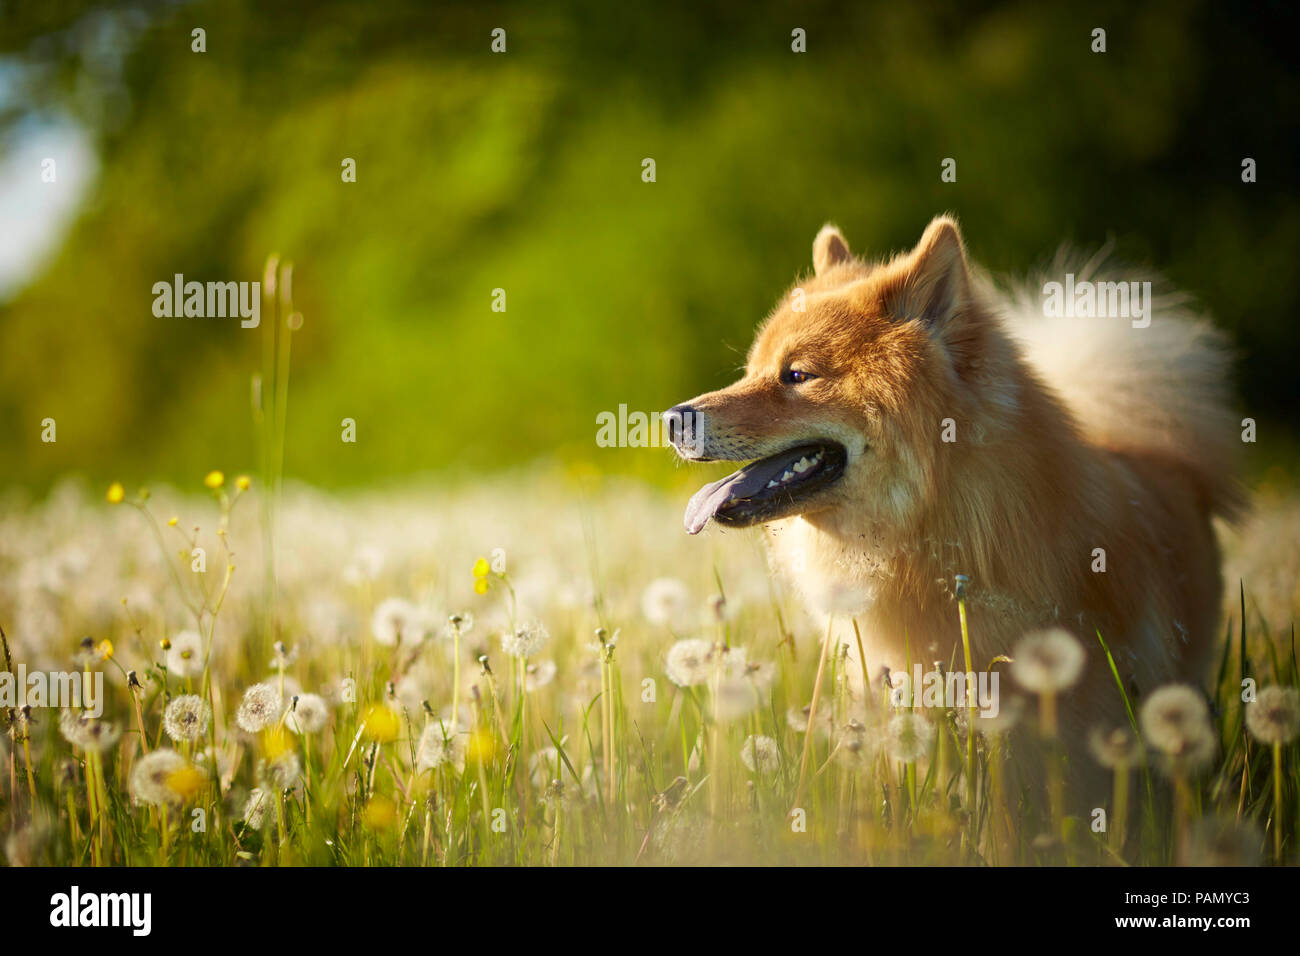 Eurasier, Eurasian. Adult dog standing in a meadow with böwballs. Germany - Stock Image